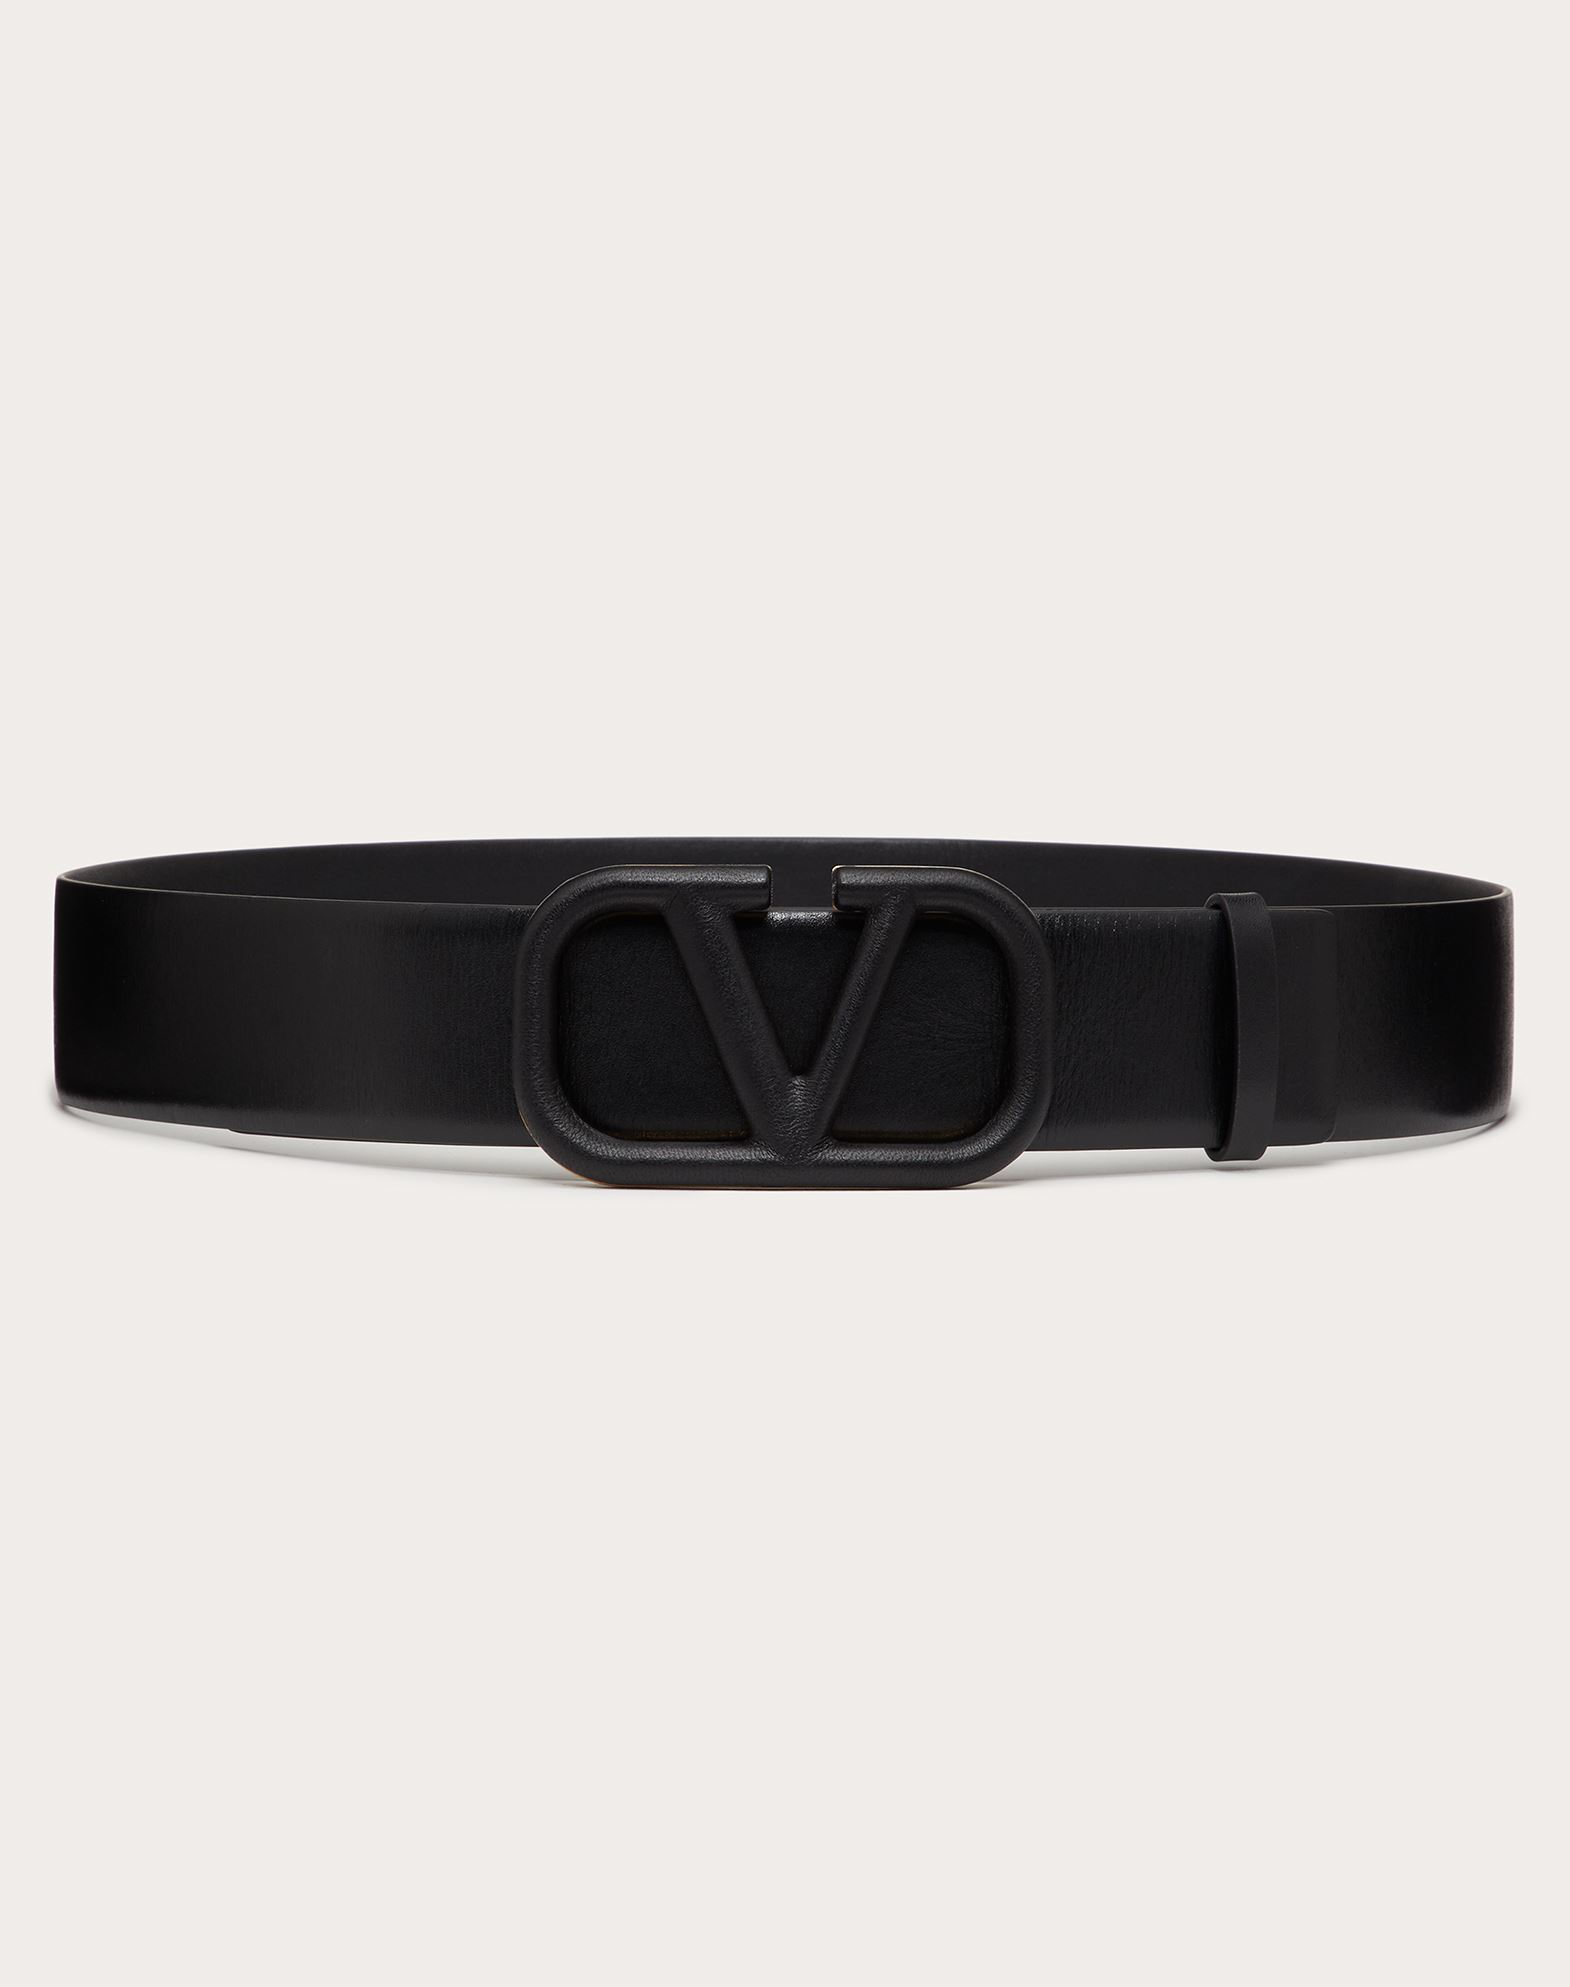 VLOGO BELT IN GLOSSY CALFSKIN 40 MM